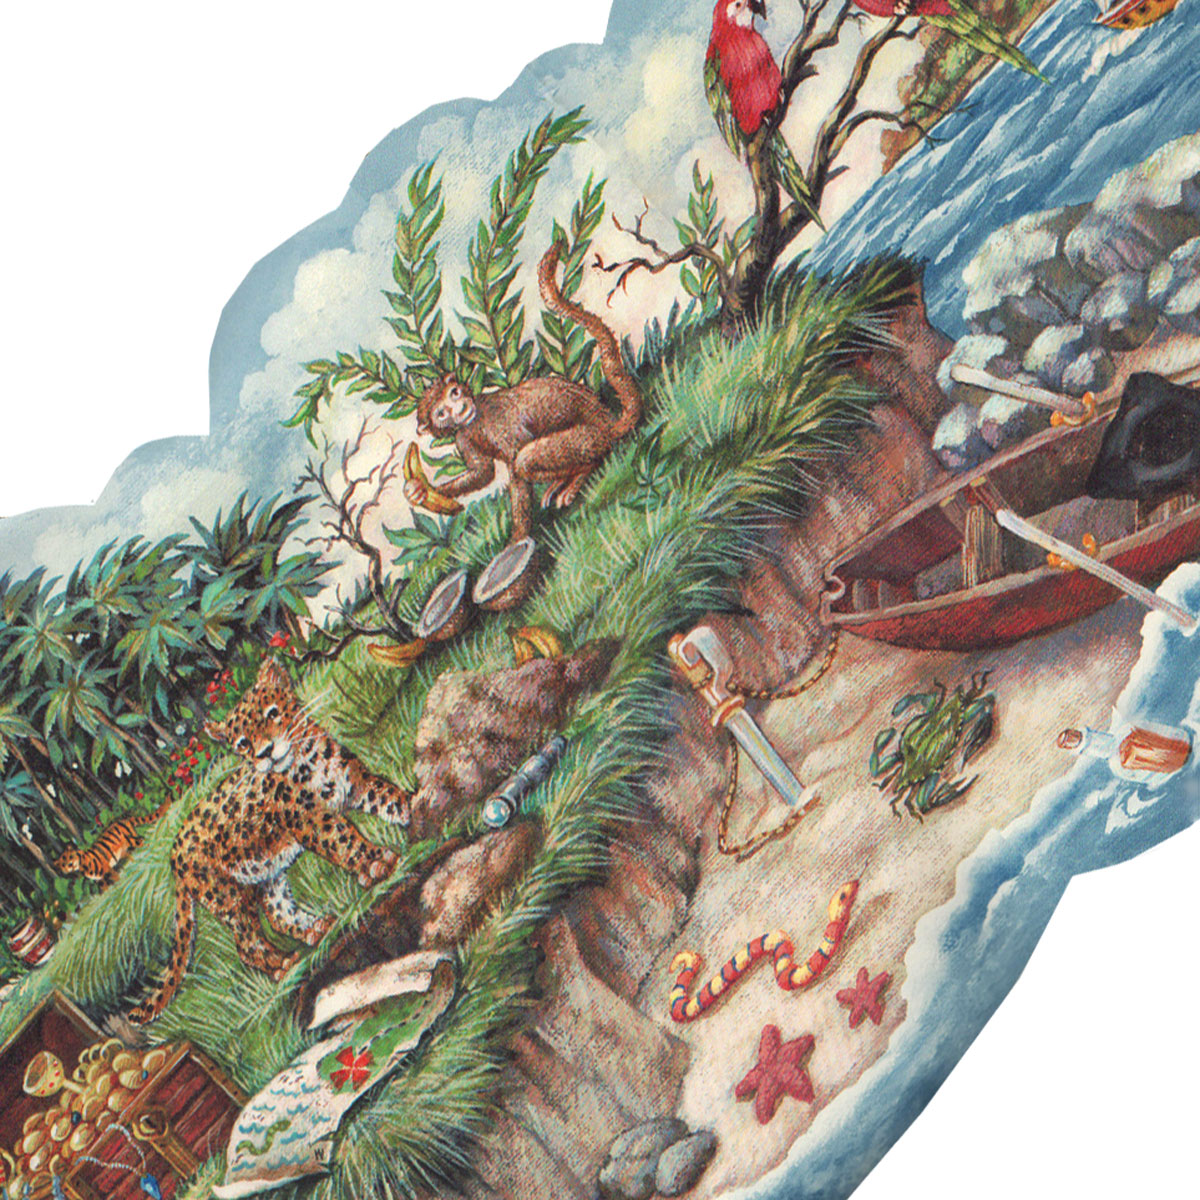 Blue Mountain Wallcoverings 12440721 Pirate Beach Jungle Prepasted Wall Border Roll